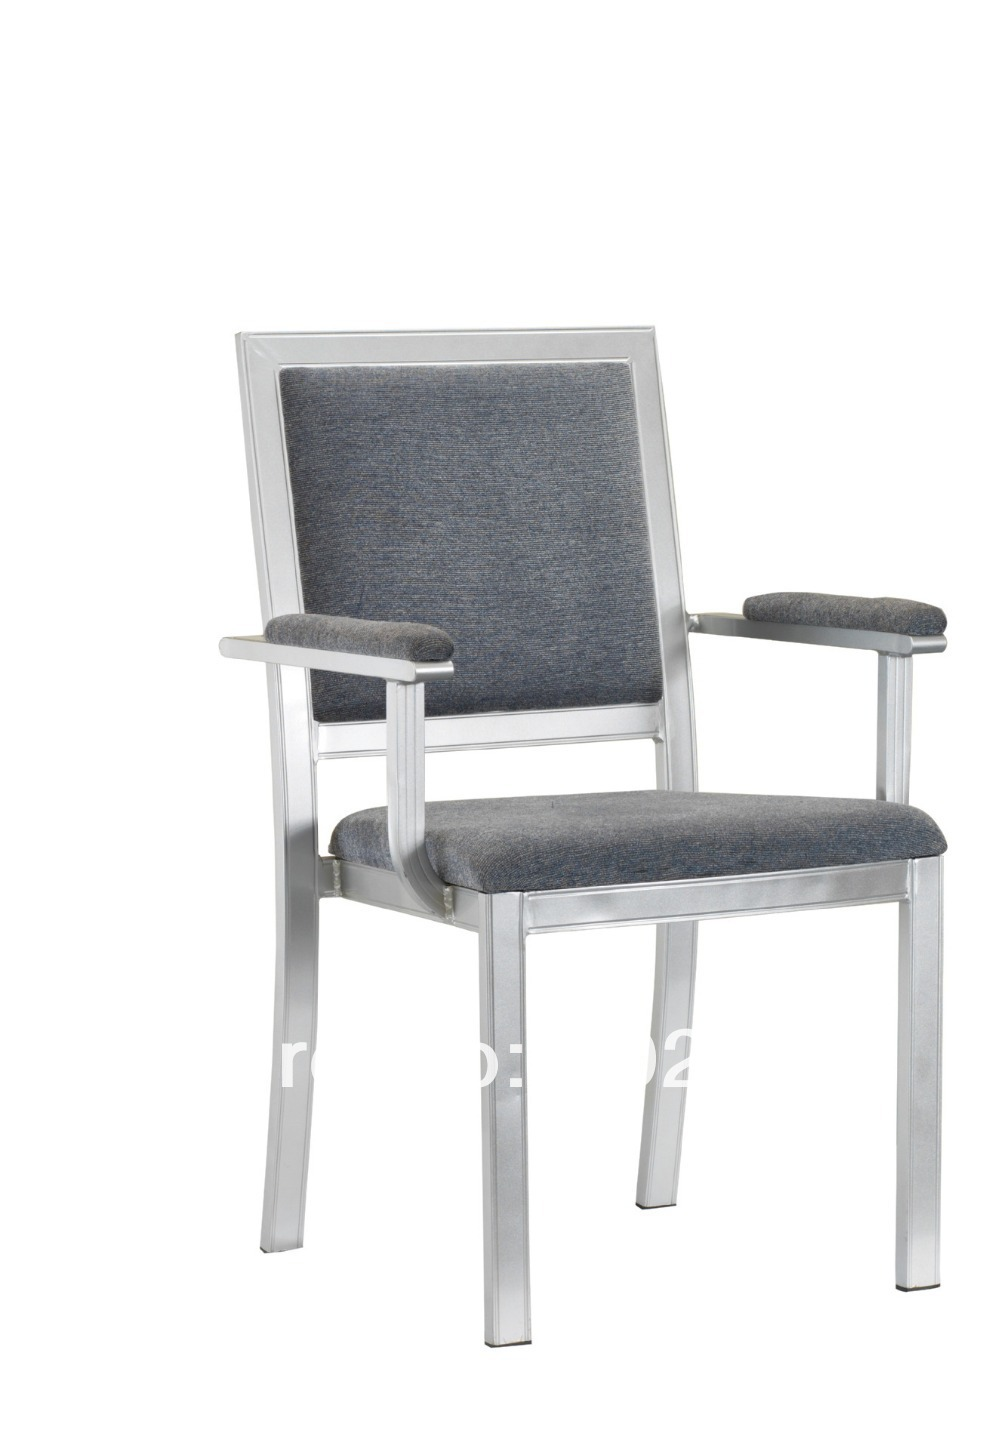 Stackable Wood Grain Aluminum Banquet Armchair,heavy Duty Fabric With High Rub Resistance,comfortable